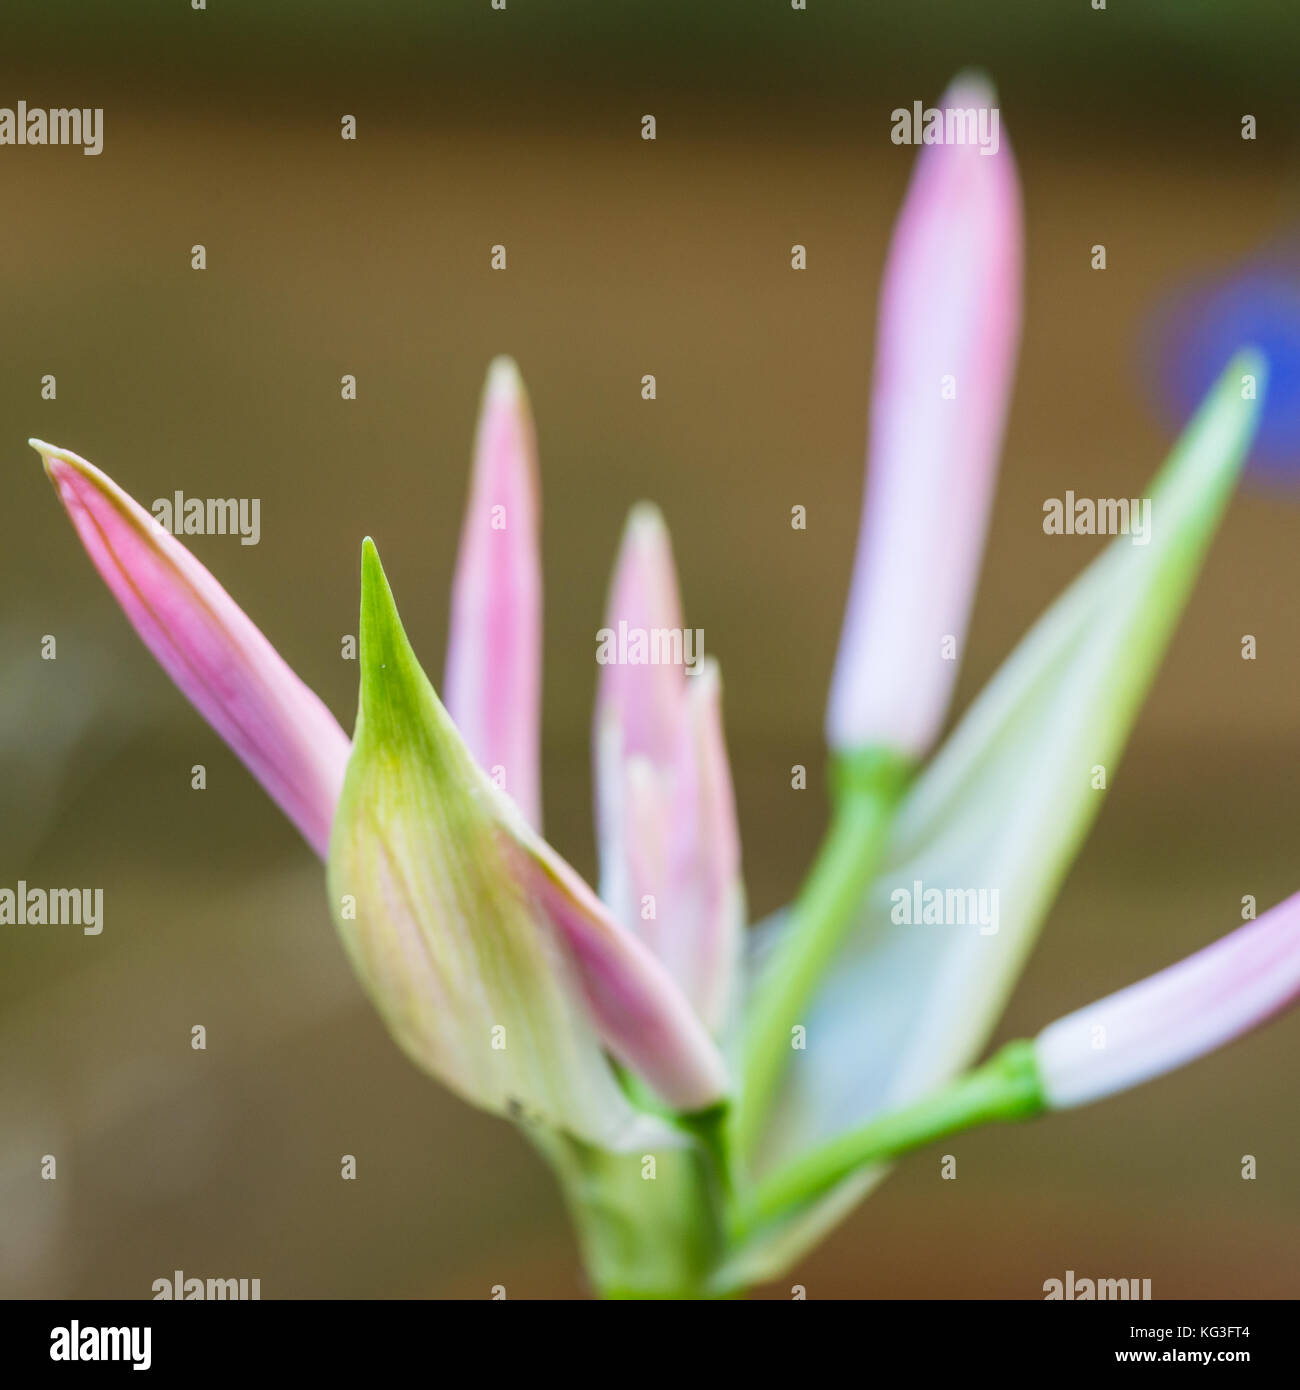 A macro shot of the pink flower buds of a nerine. - Stock Image